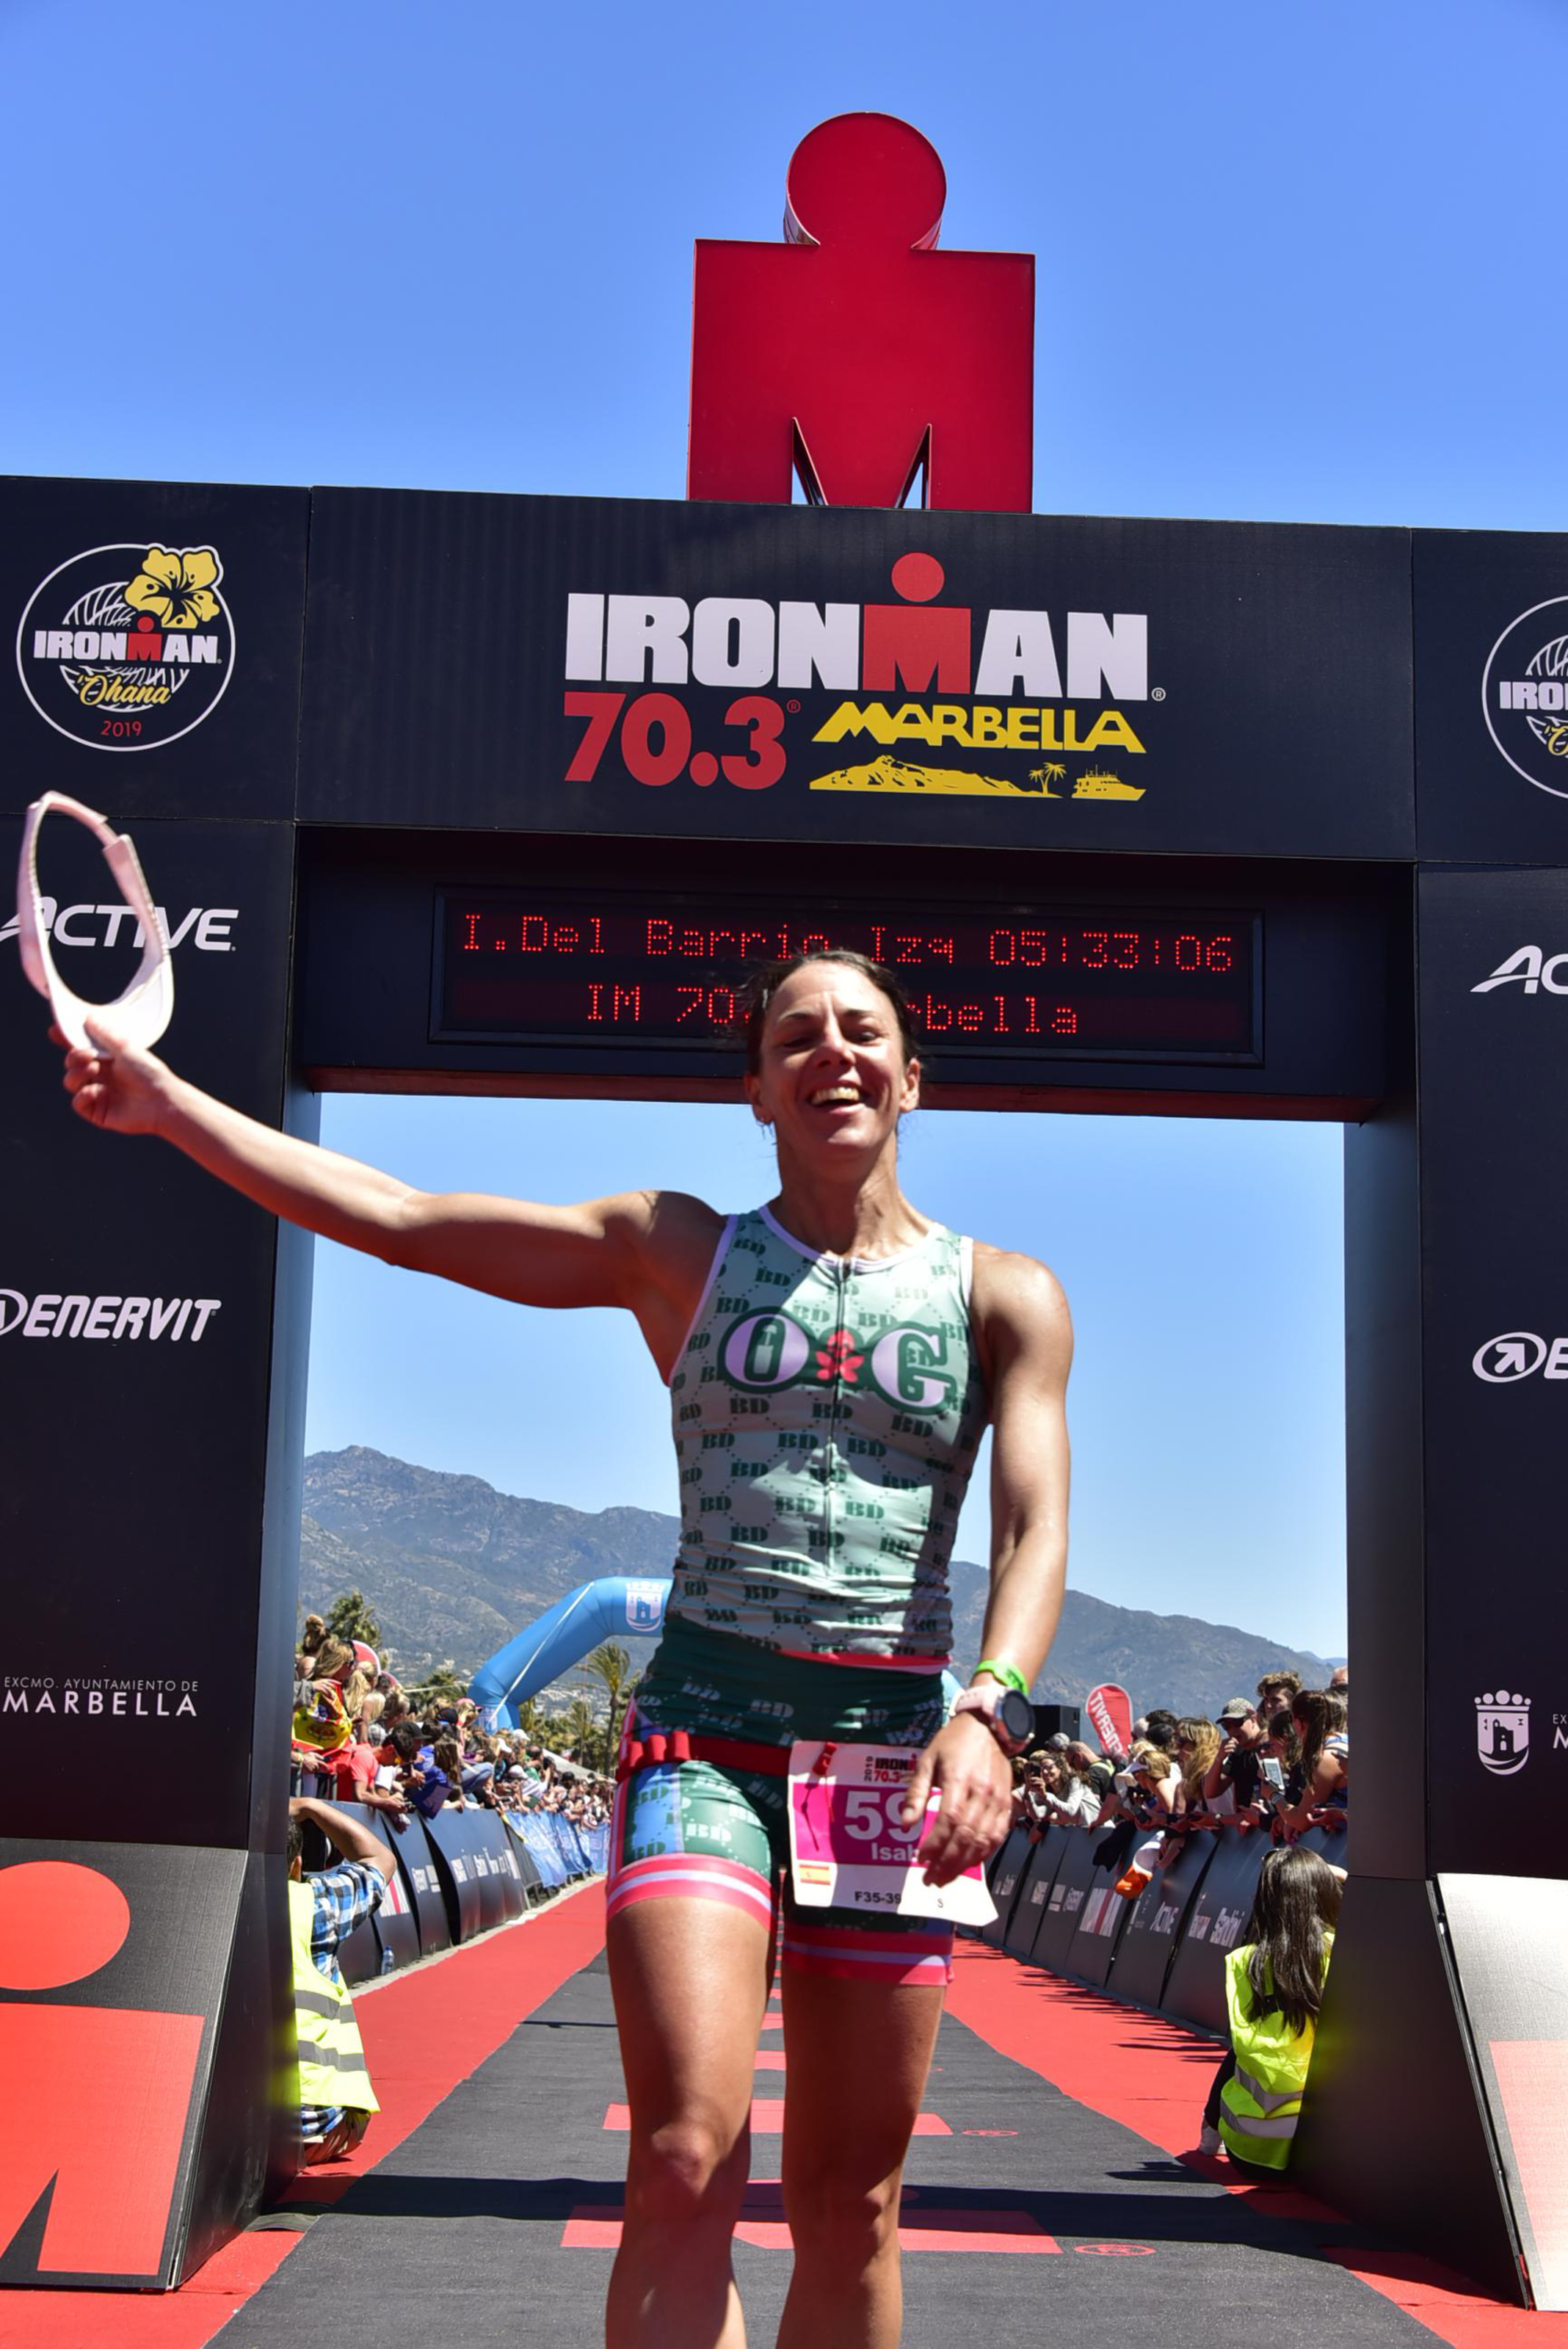 IRONMAN 70.3 MARBELLA 2019 triatlon triathlon Marbella on my training shoes competiciones ironman